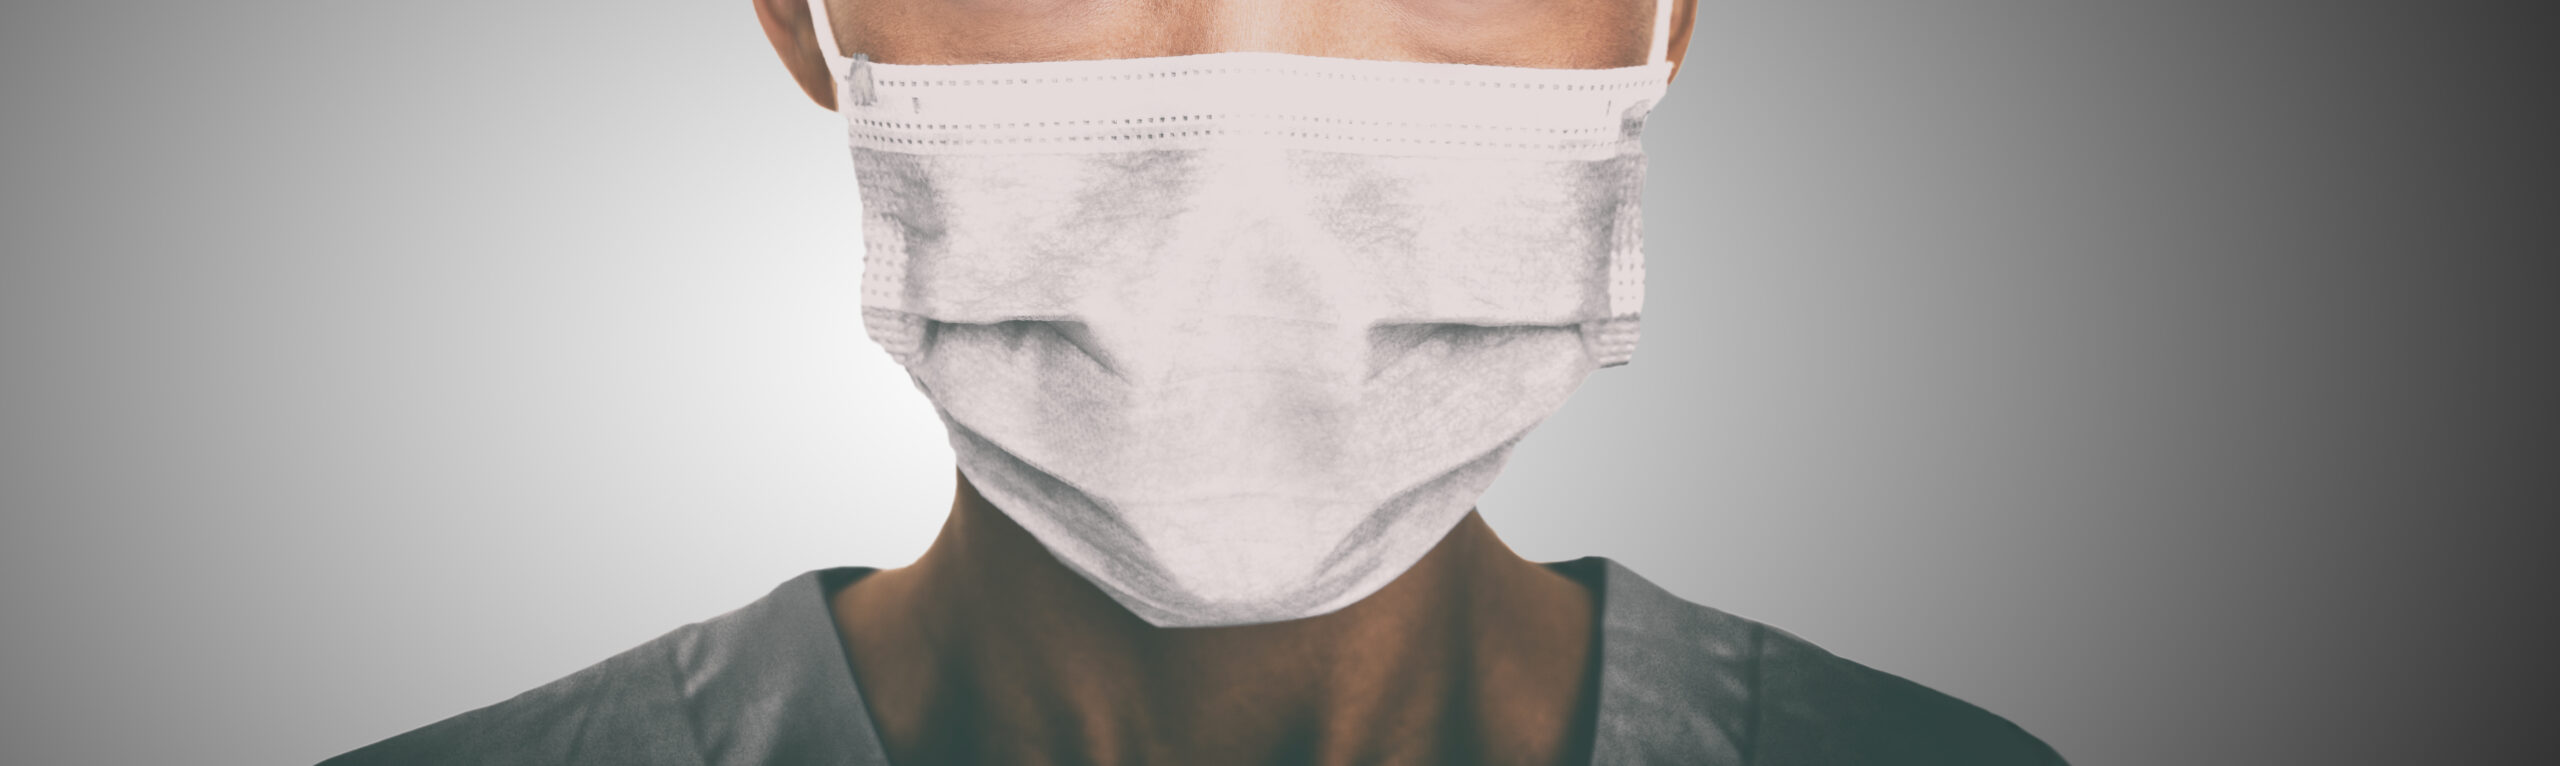 A healthcare worker wears a mask while facing the camera in front of a neutral background.